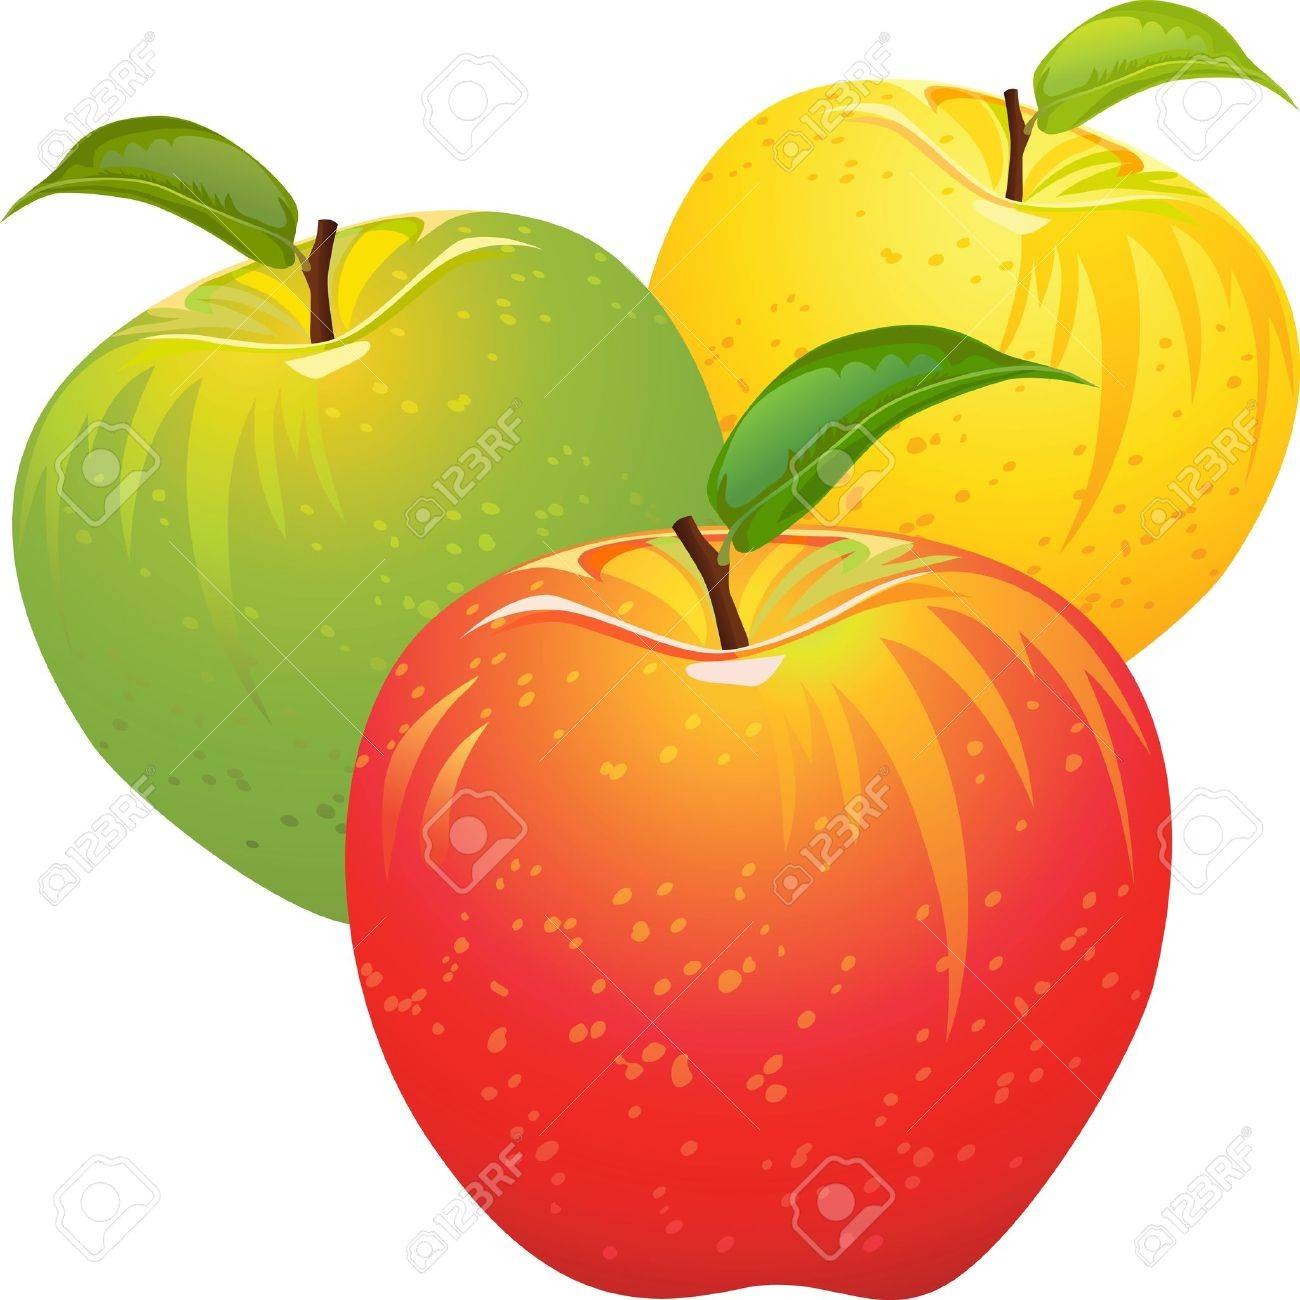 green and red apples clipart. set of red, yellow, green, ripe, juicy apples isolated on a white green and red clipart